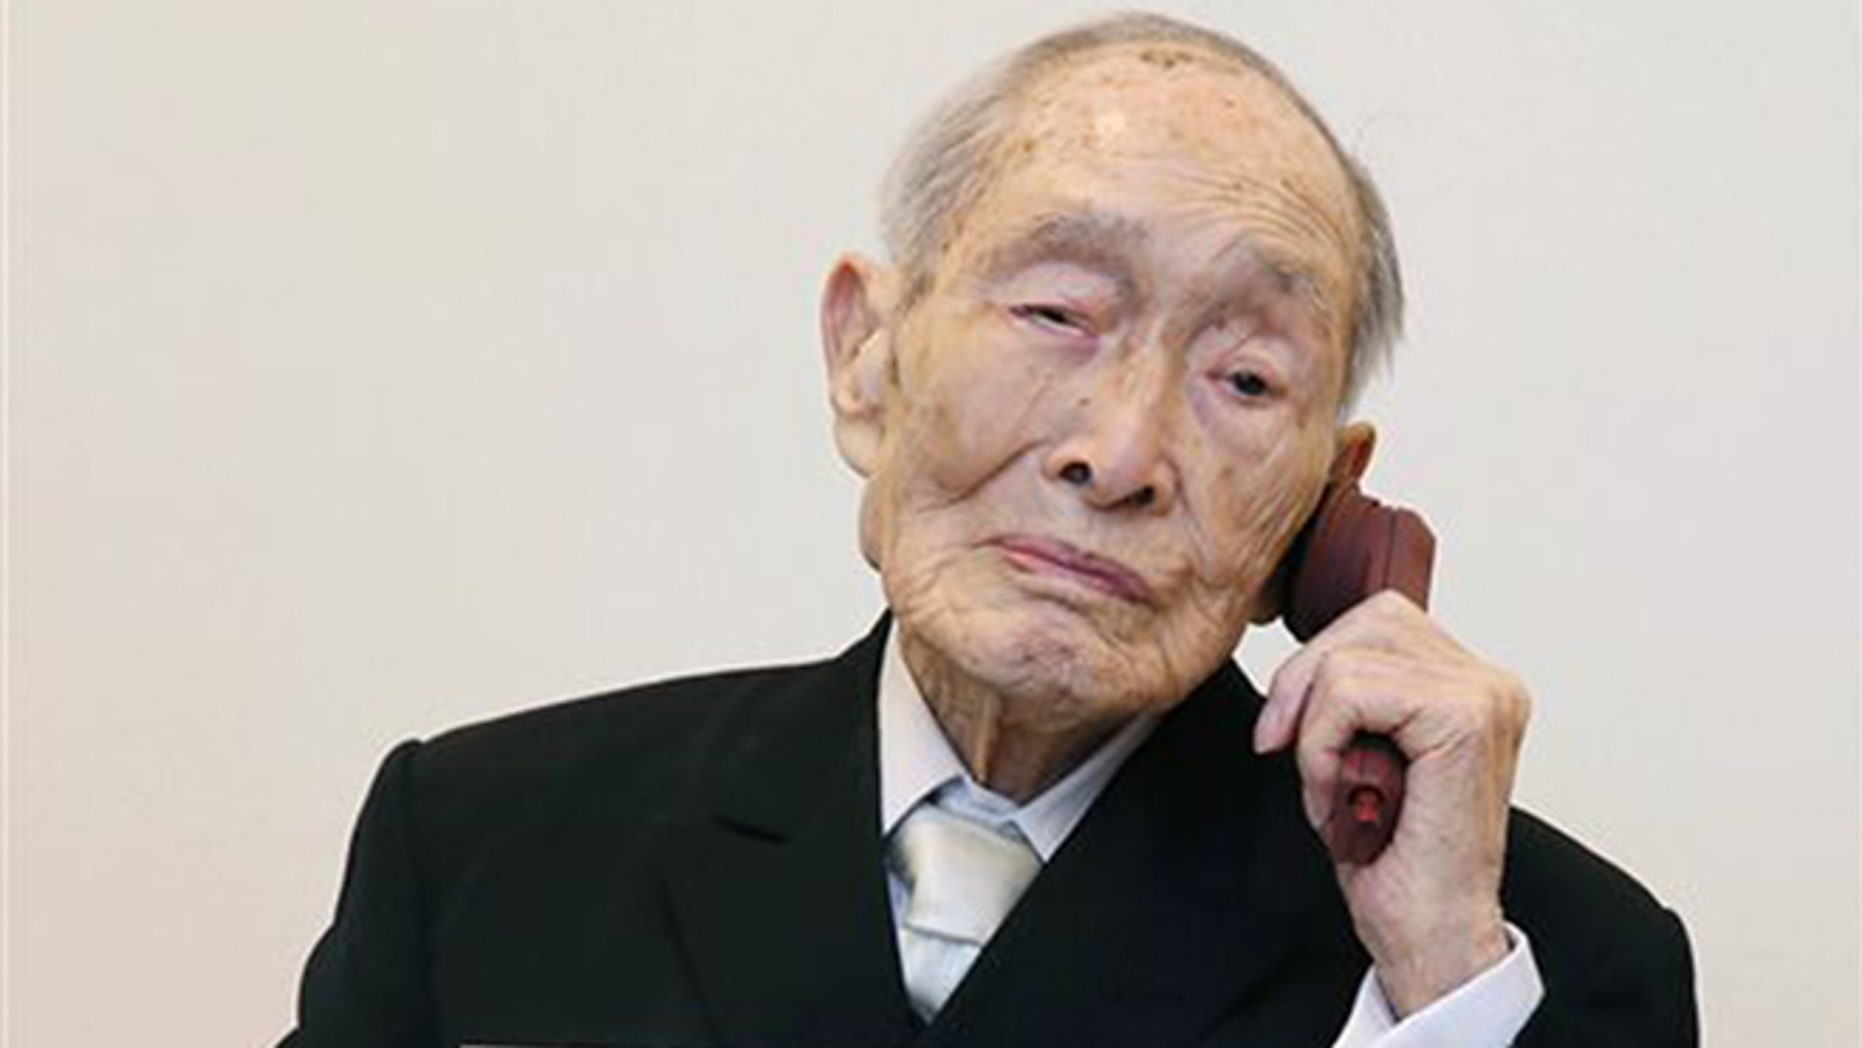 In this Aug. 20, 2014 file photo, Sakari Momoi, a Japanese retired educator, poses for a photo in Tokyo.